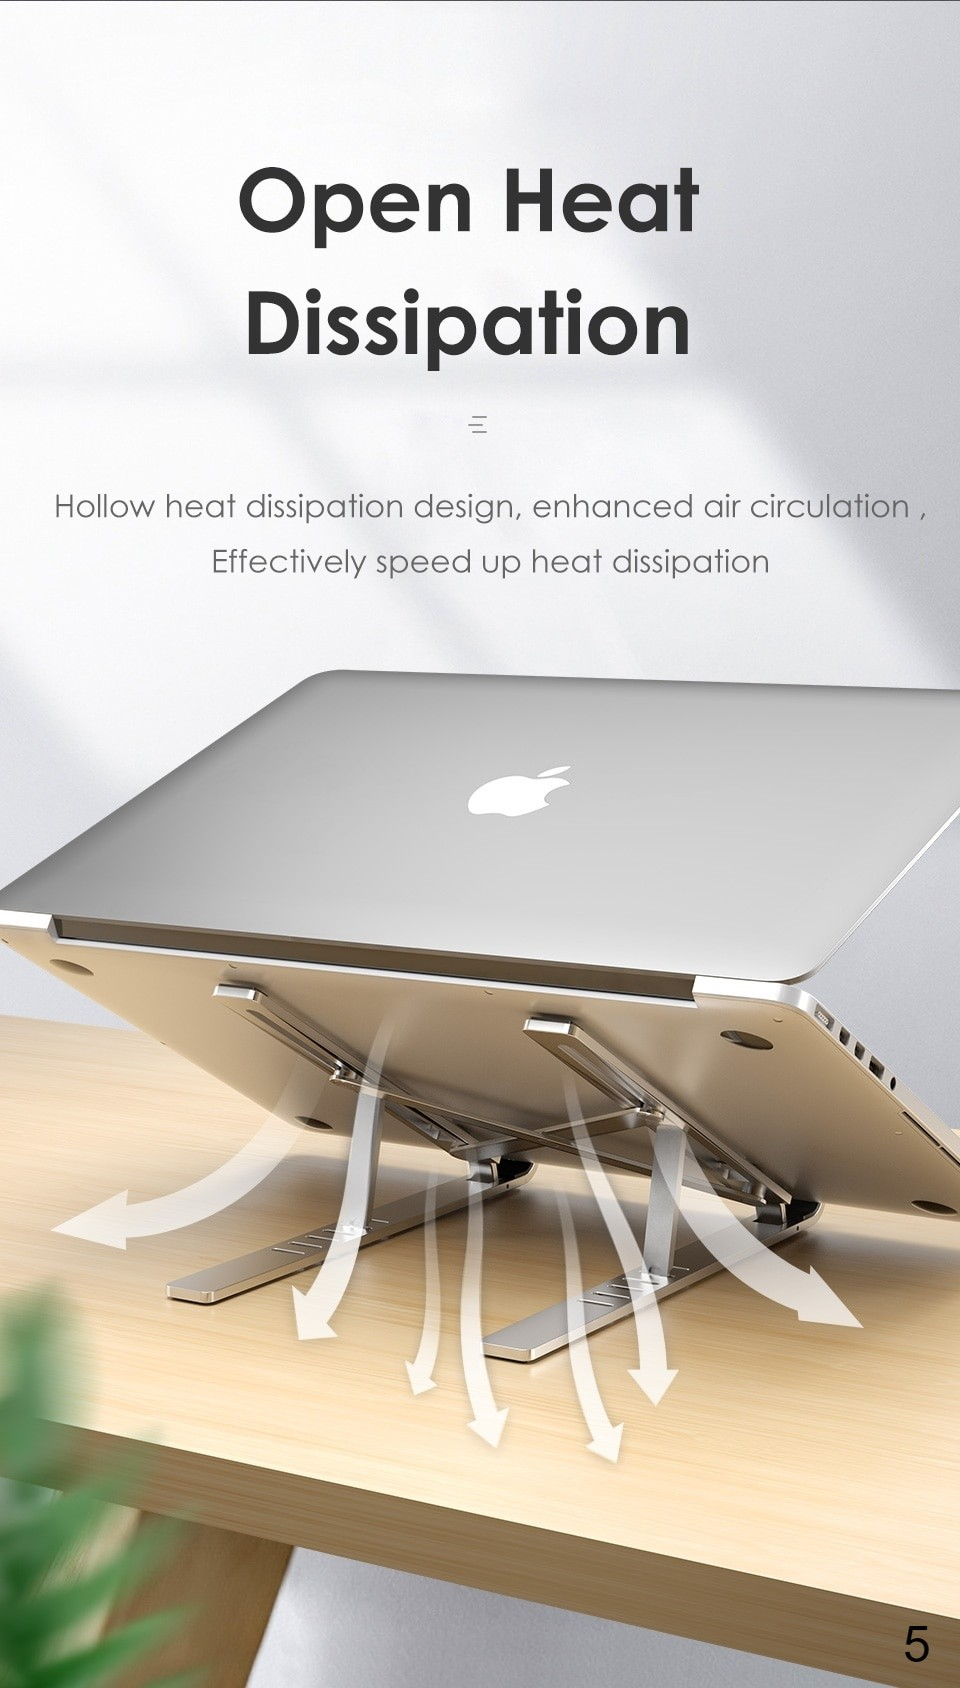 This Laptop holder provide laptop effective open heat dissipation